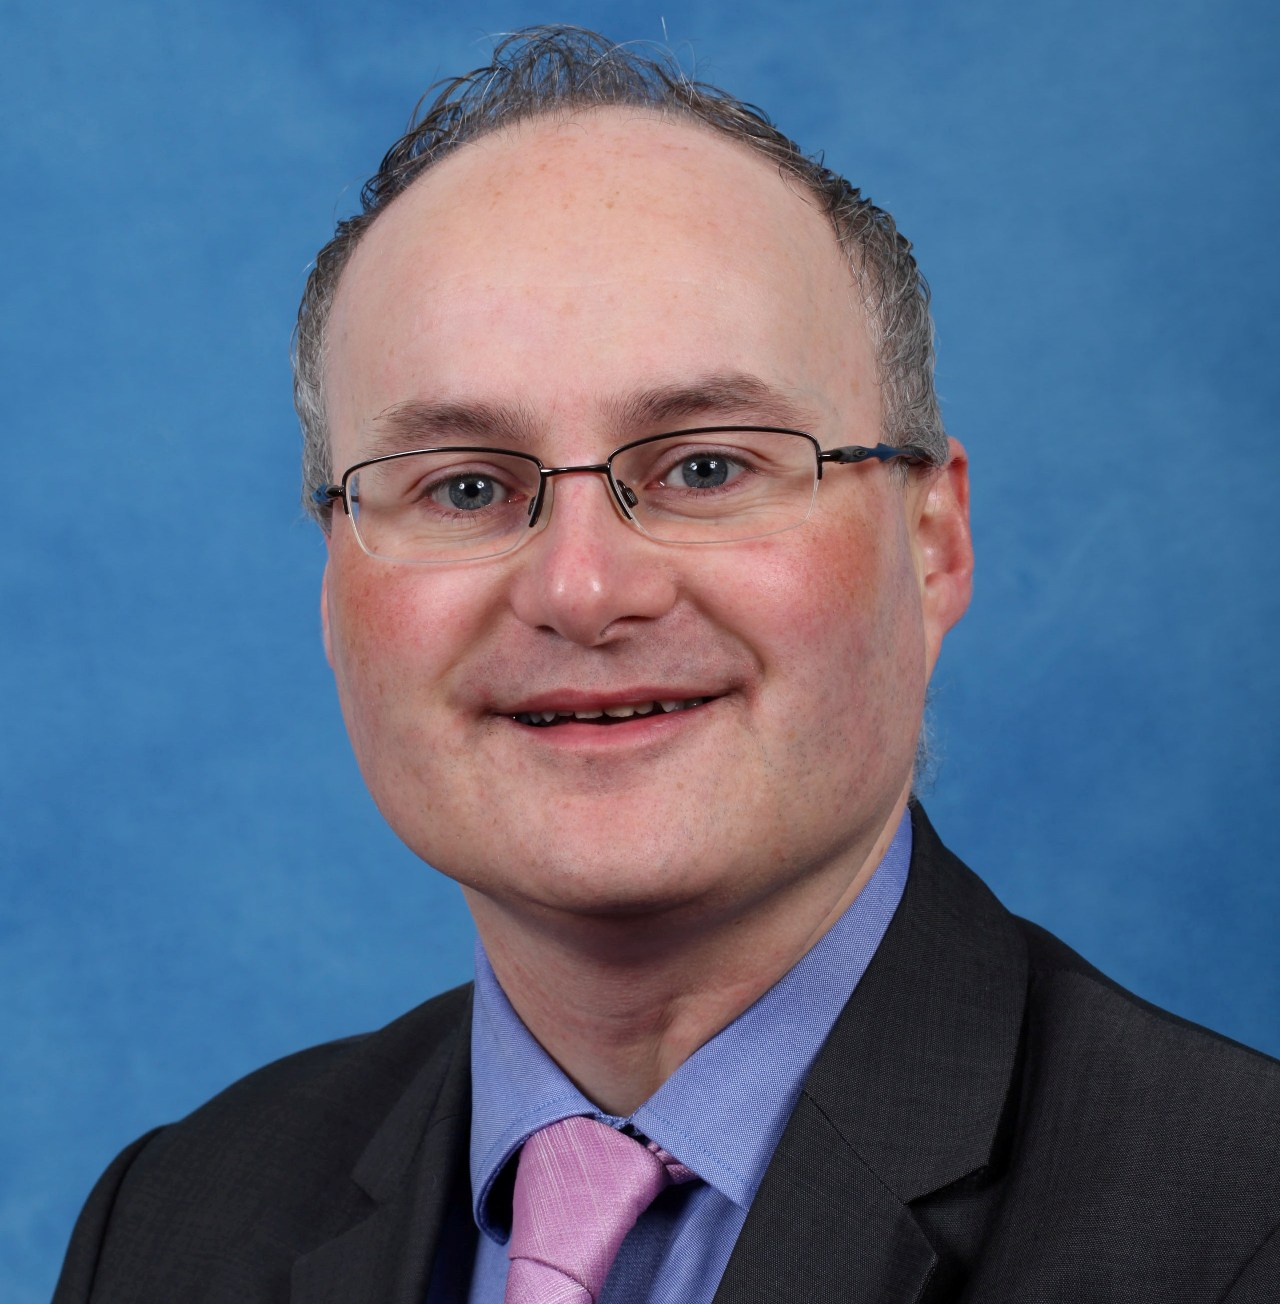 Councillor Simon Geraghty, former leader of Worcester City Council